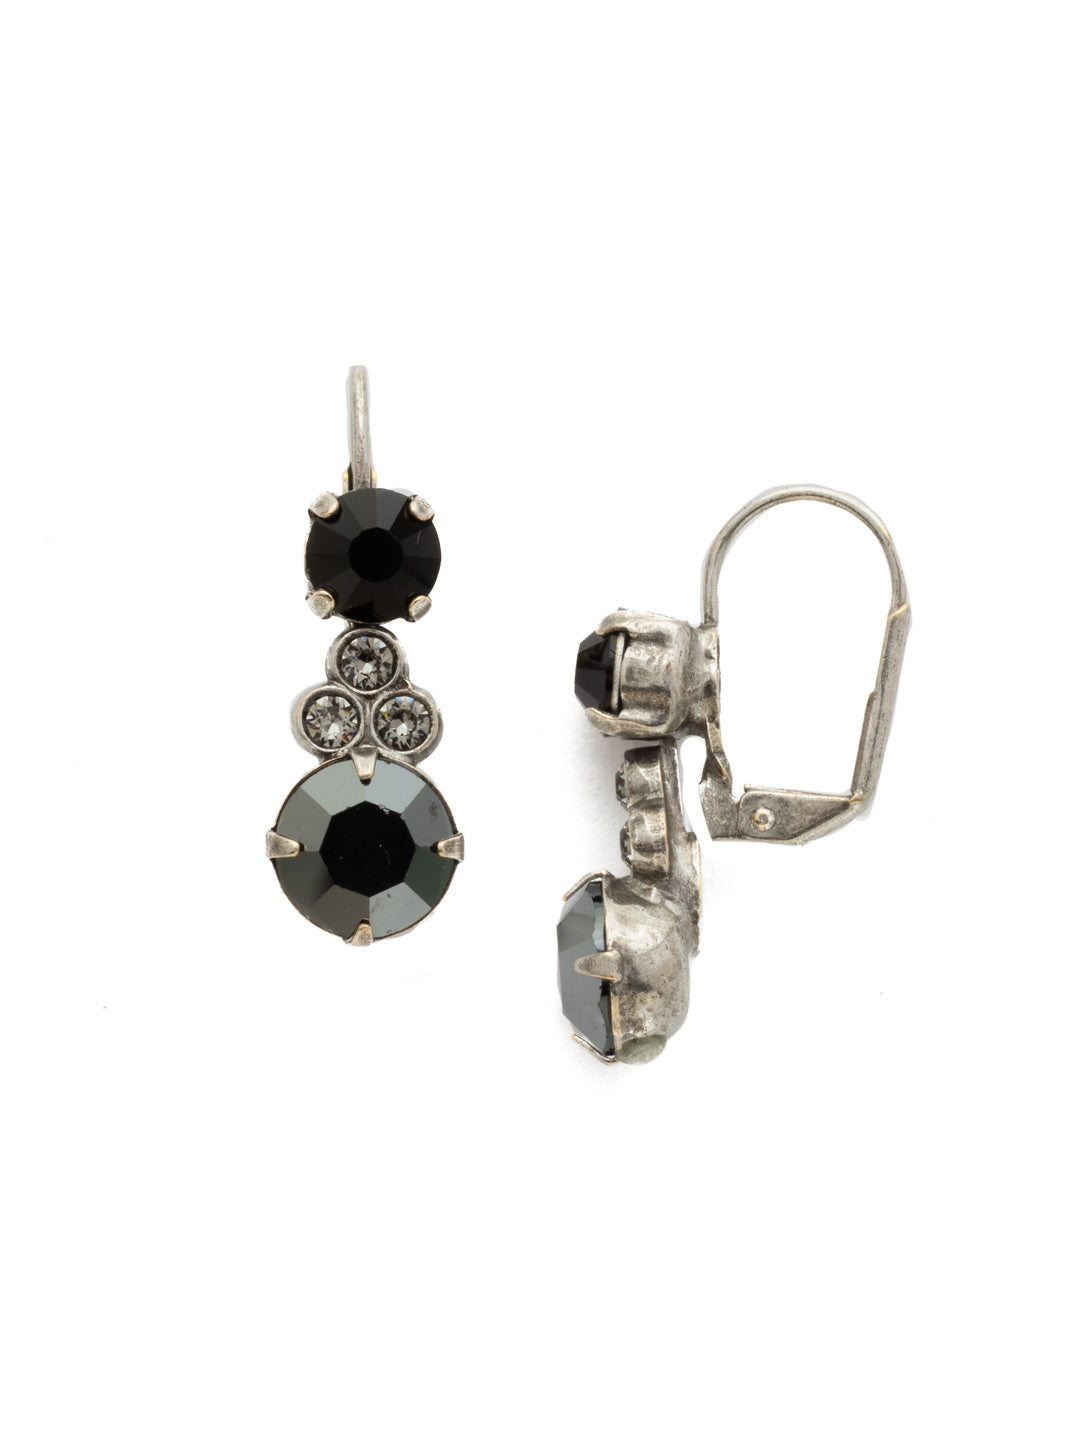 Clustered Circular Crystal Drop Earring - ECJ14ASBON